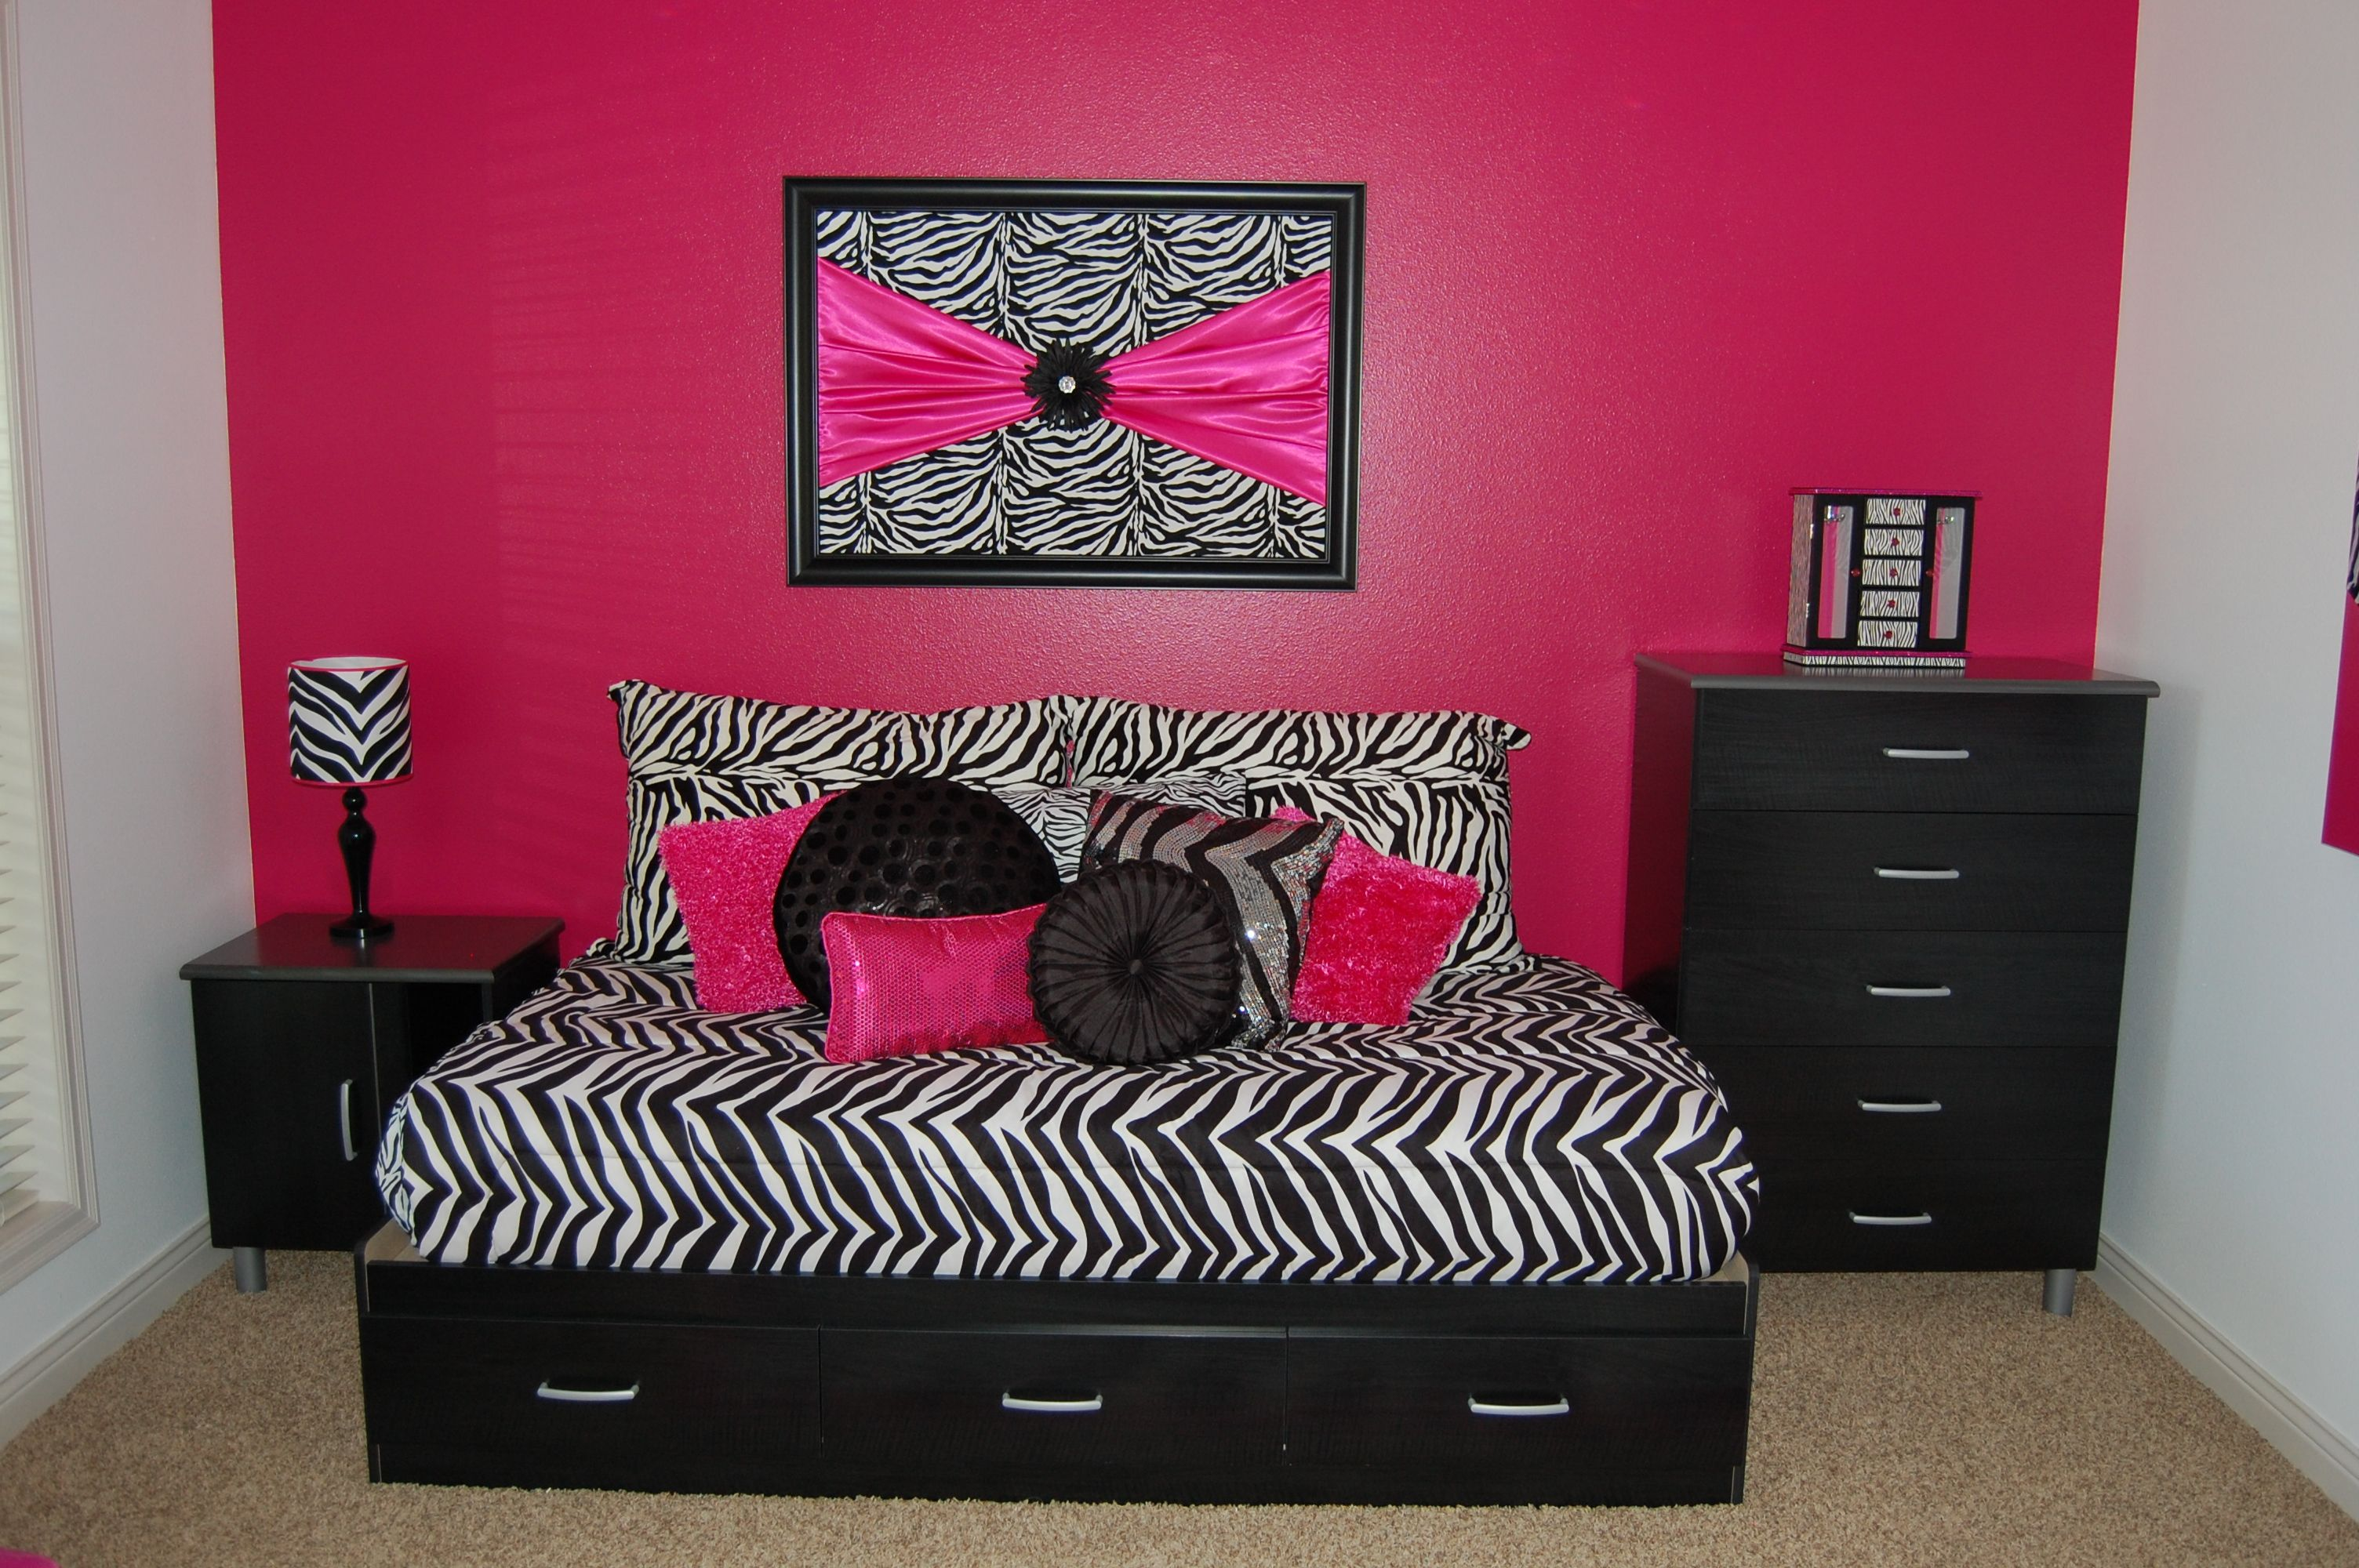 More Adult Style Pink And Black Bedroom Decor Pink Bedroom Decor